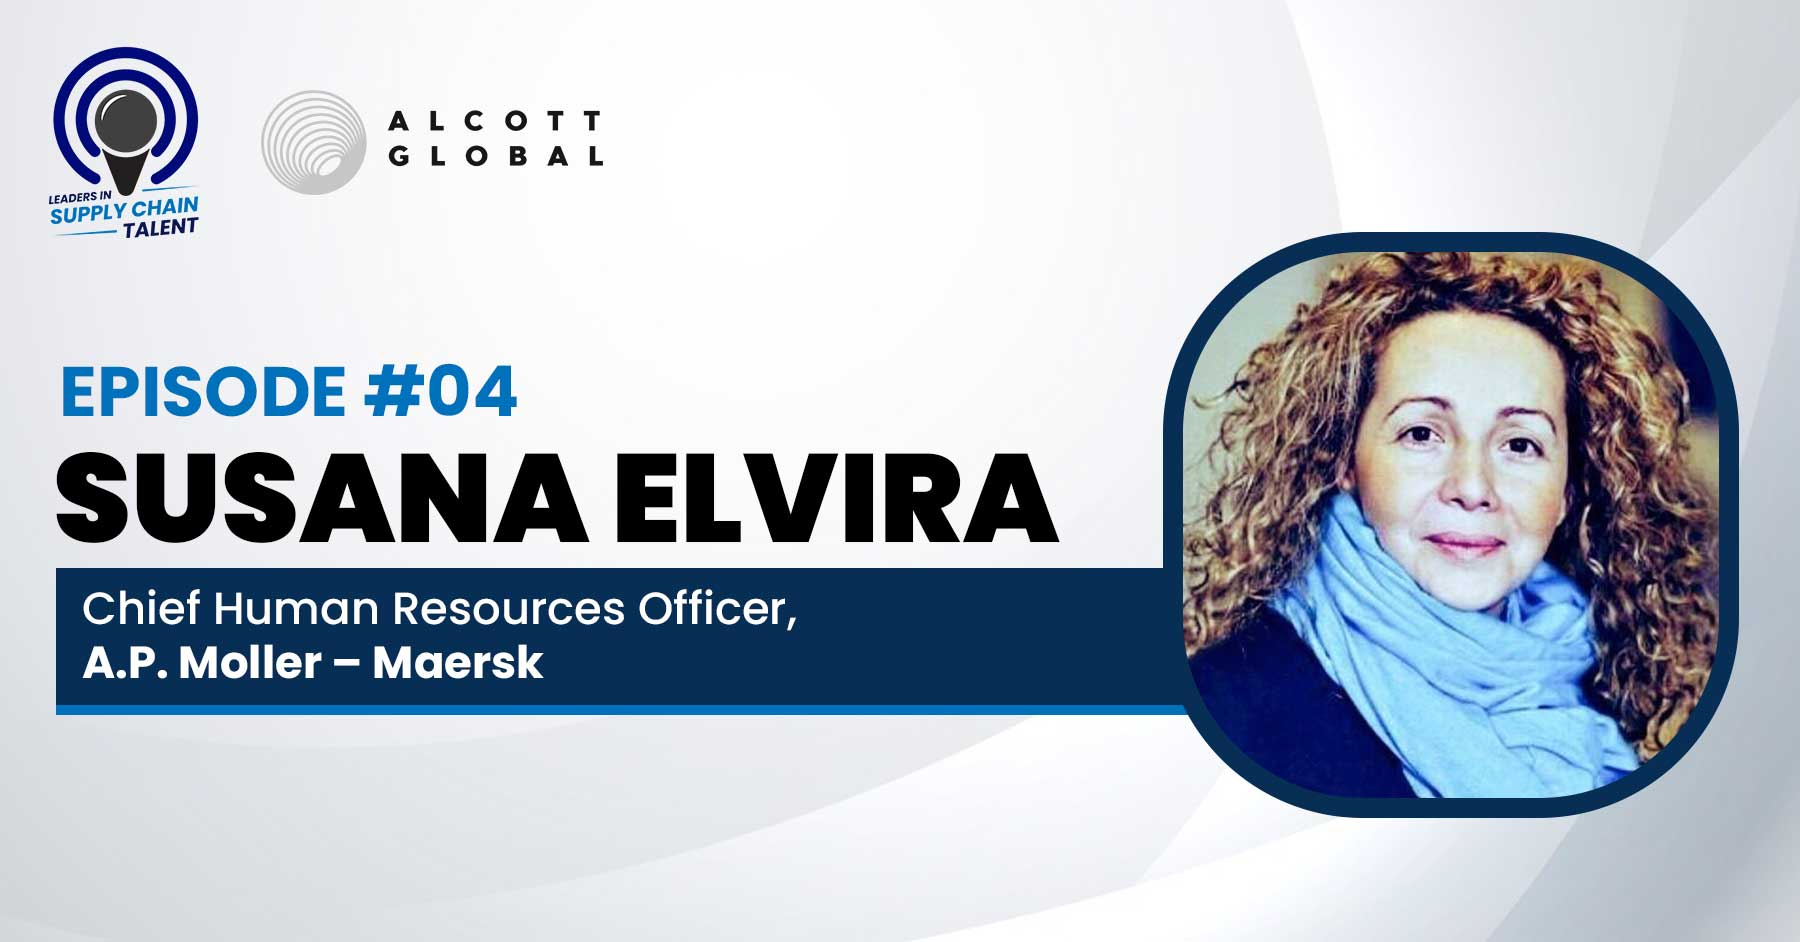 #04: Susana Elvira, Chief Human Resources Officer of A.P. Moller - Maersk Featured Image